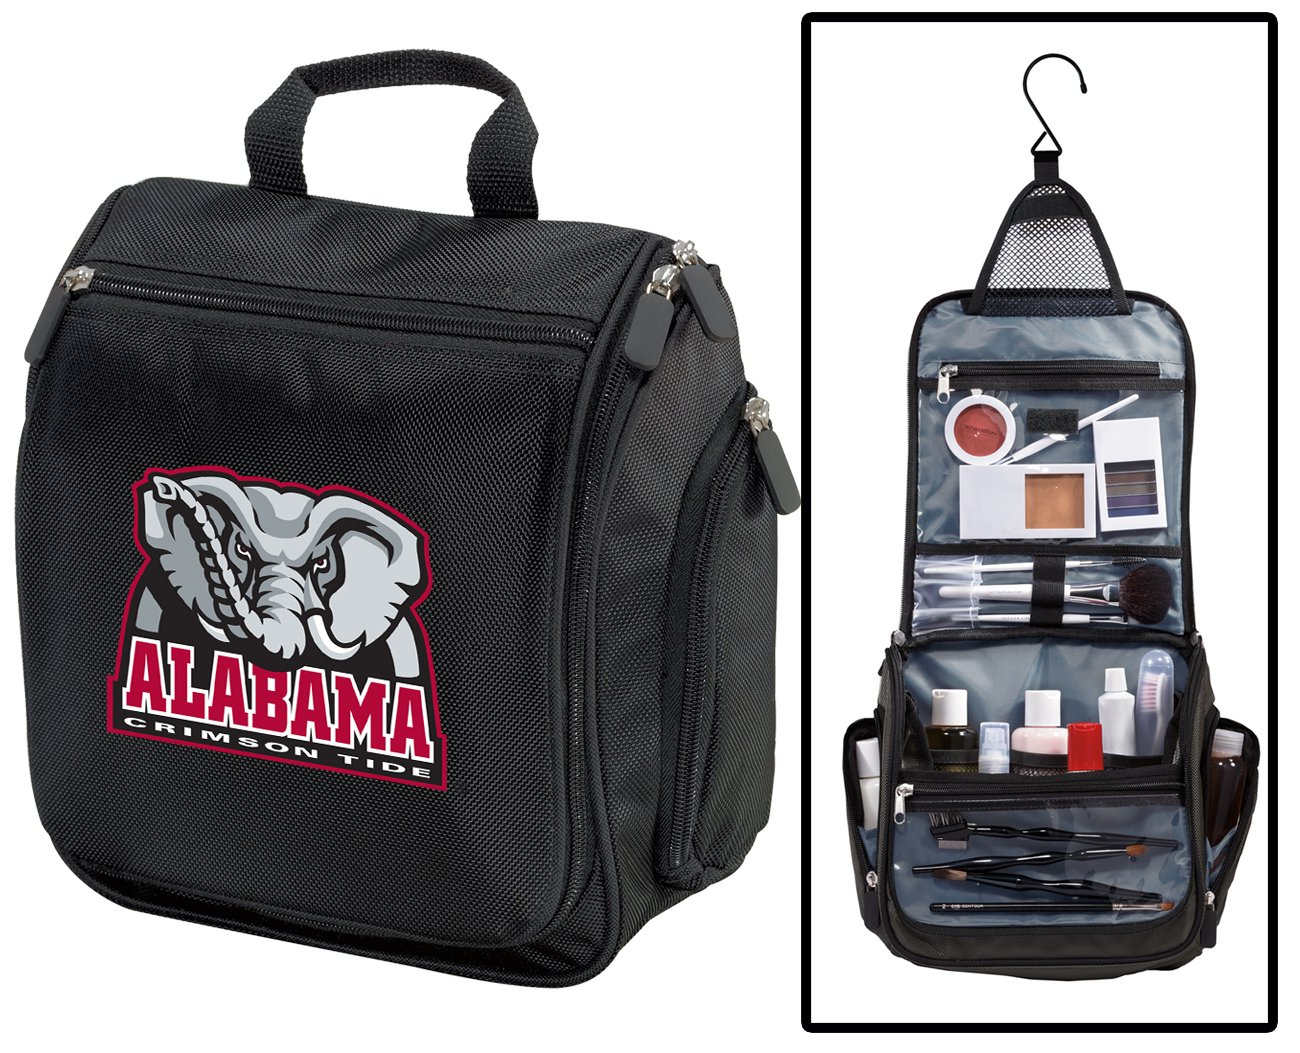 Alabama Toiletry Bags Or Hanging University of Alabama Shaving Kits Broad Bay